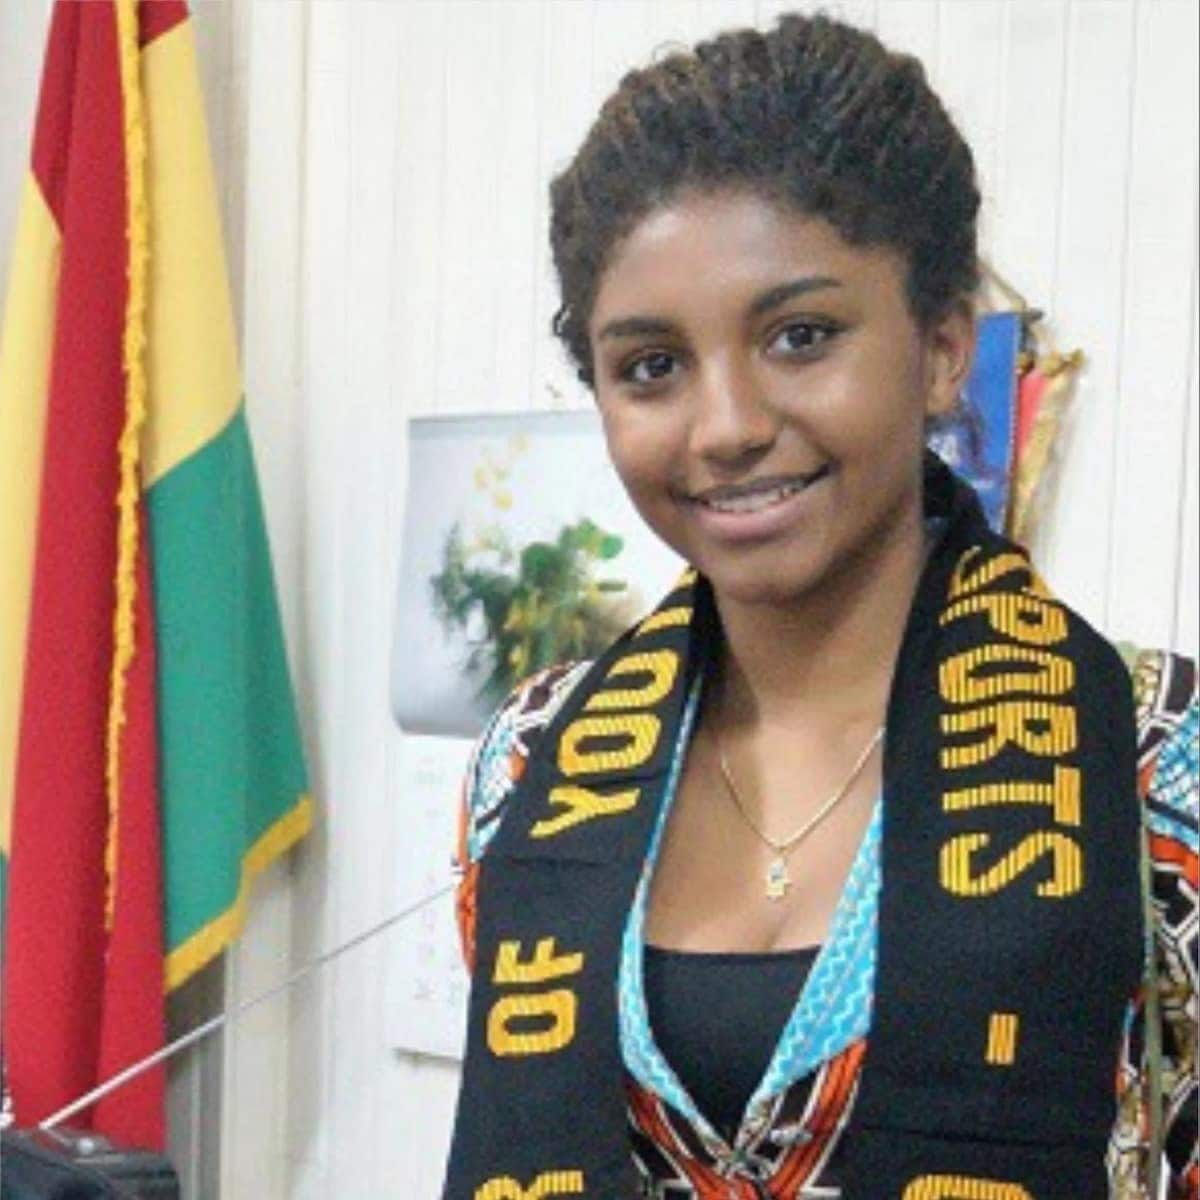 10 young Ghanaians who are putting Ghana on the map with their efforts